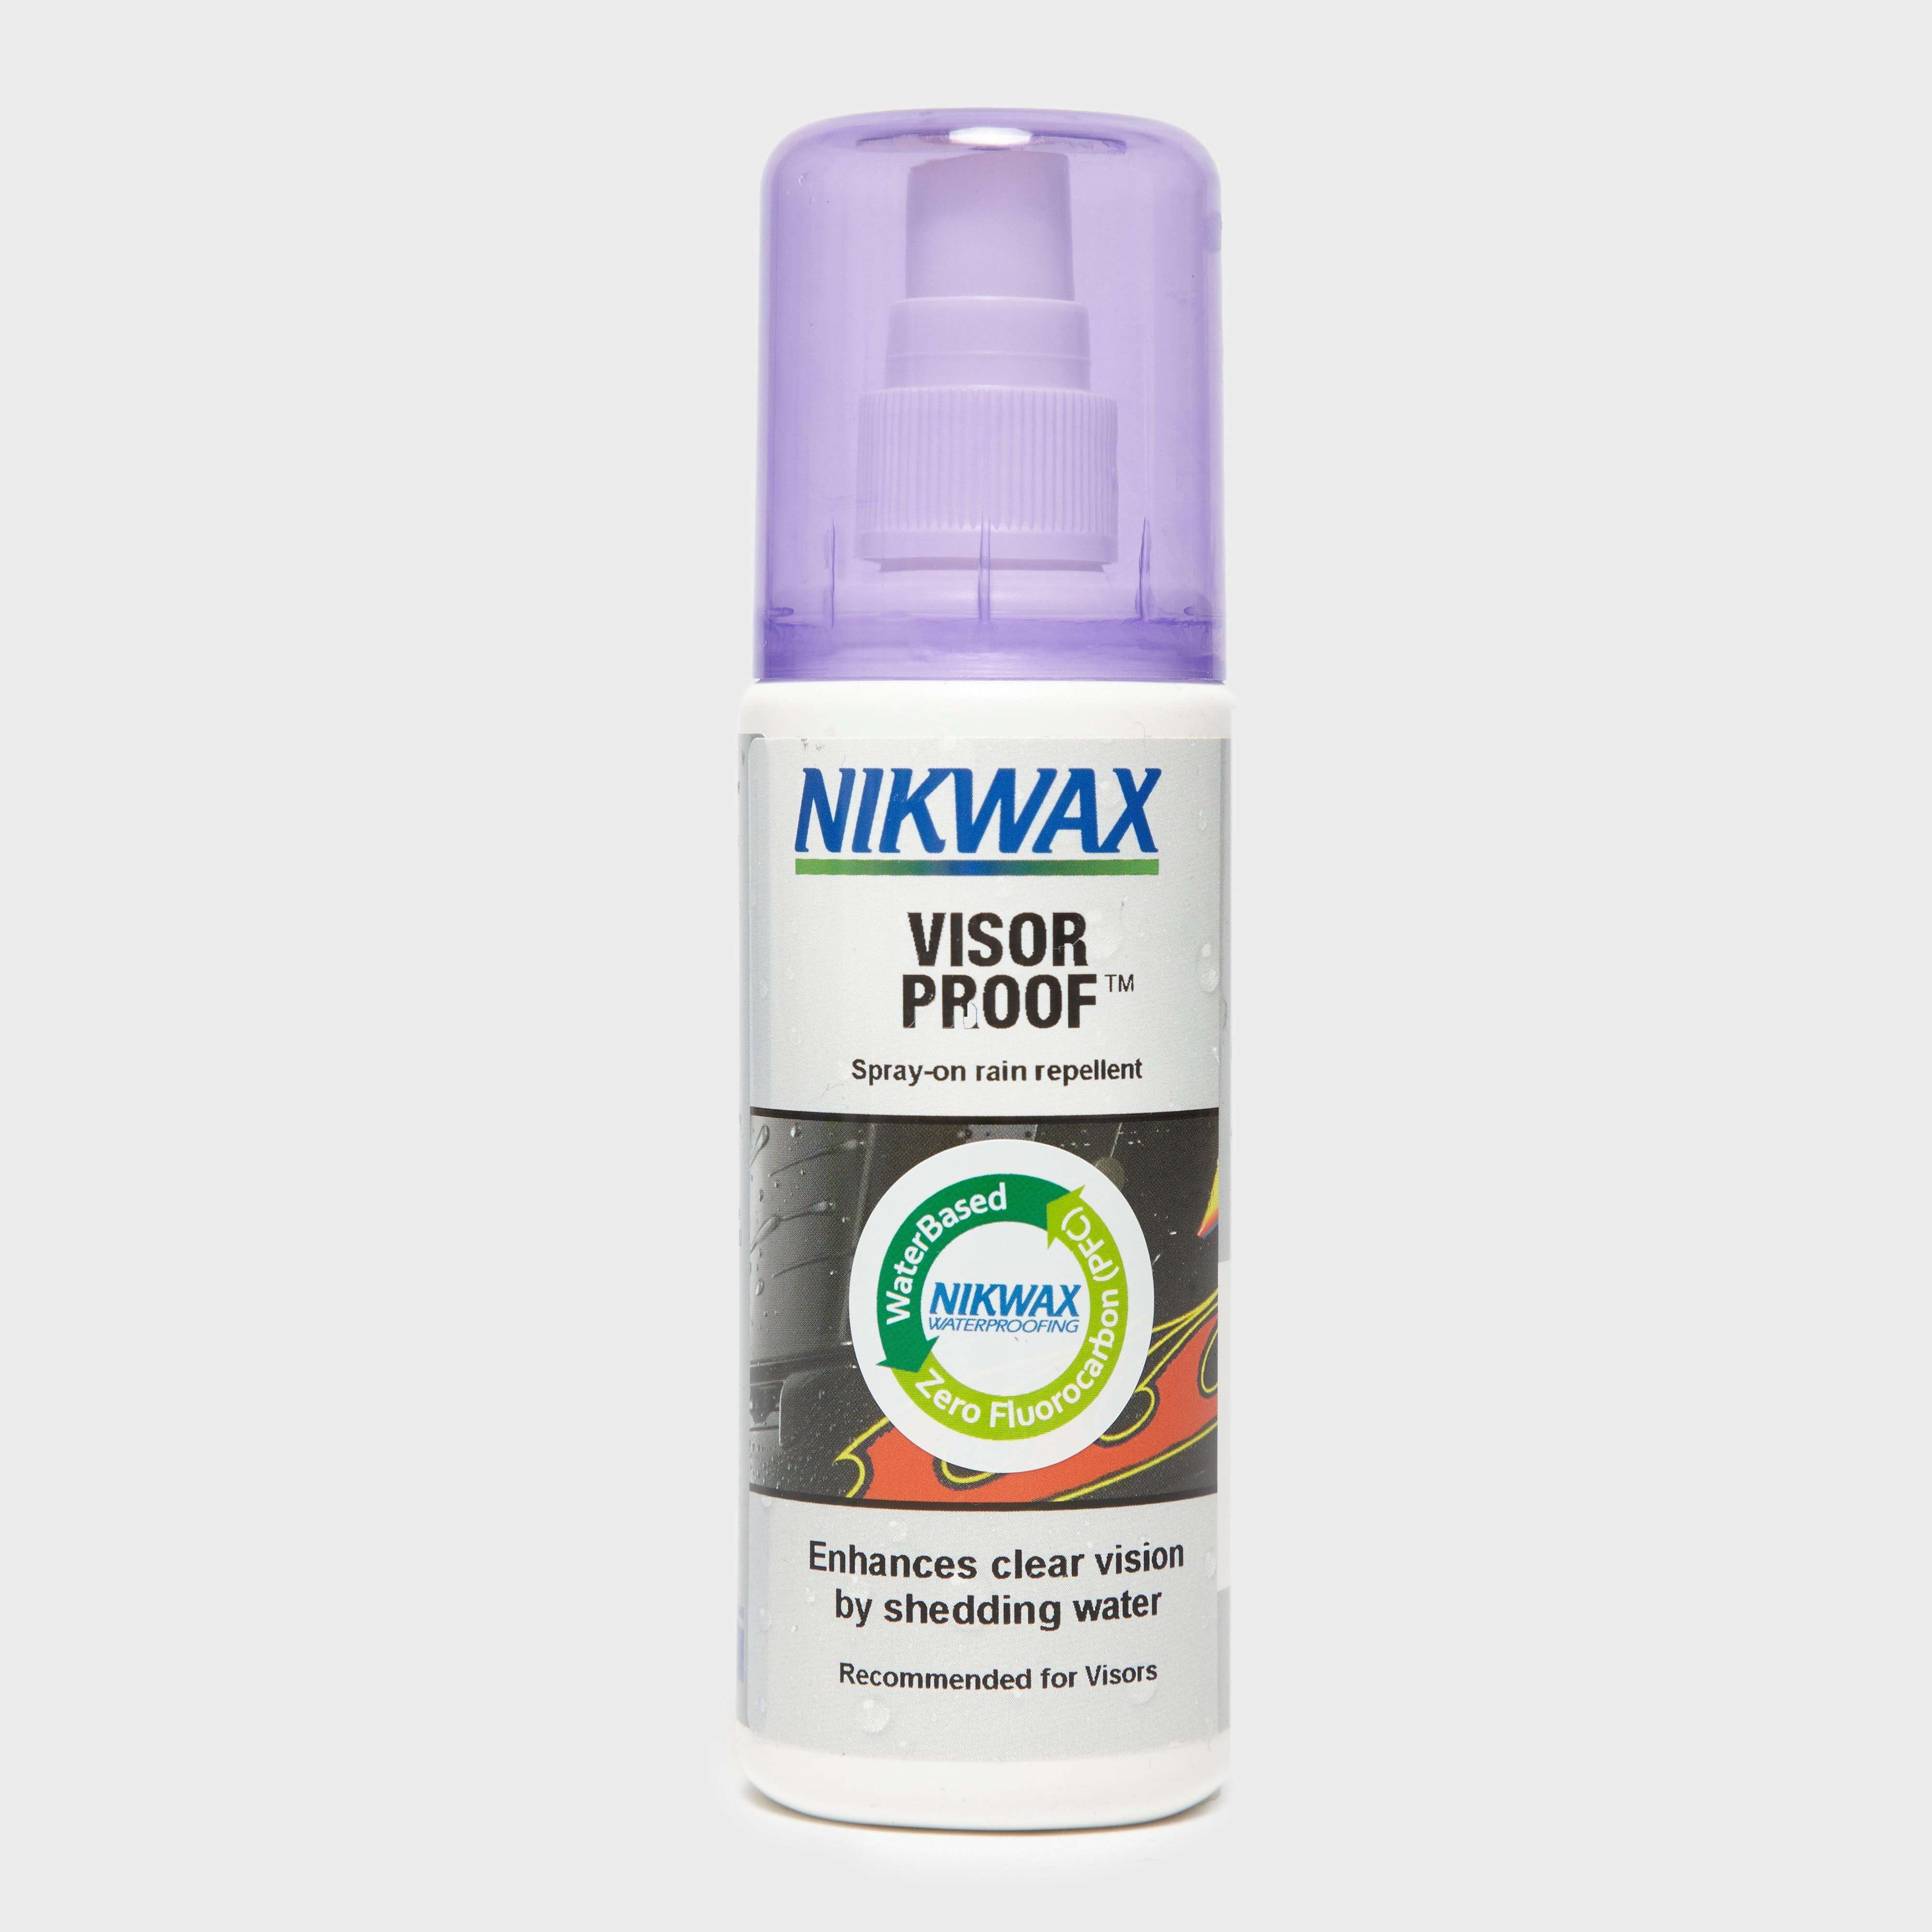 NIKWAX Visor Proof 125ml